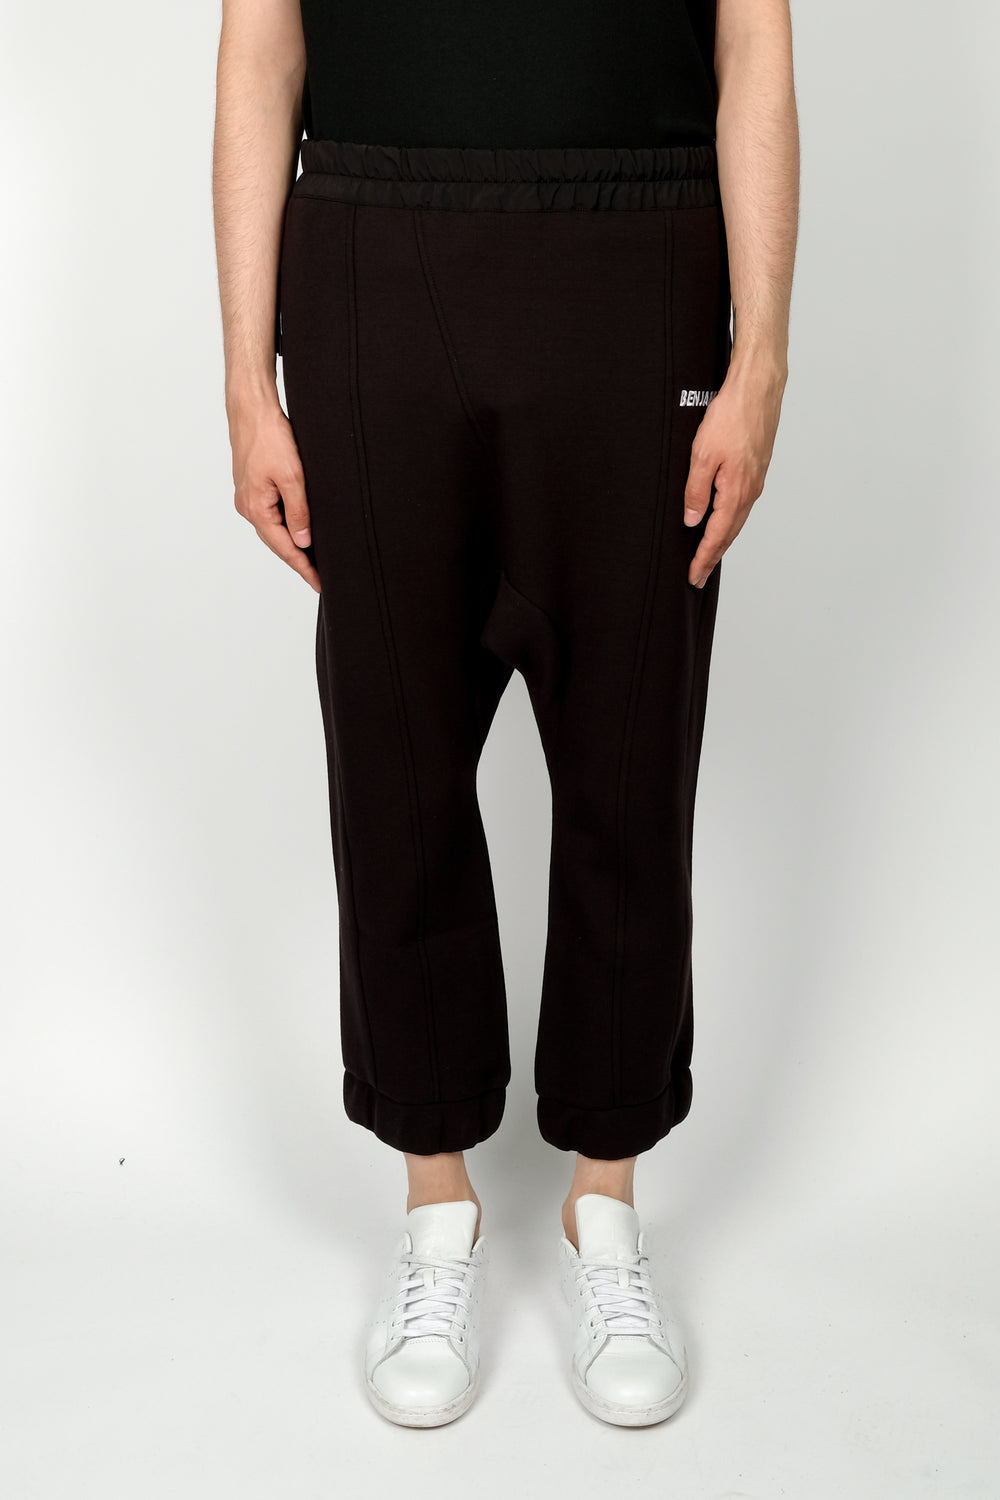 Les Benjamins Lyaw Sweatpant In Black